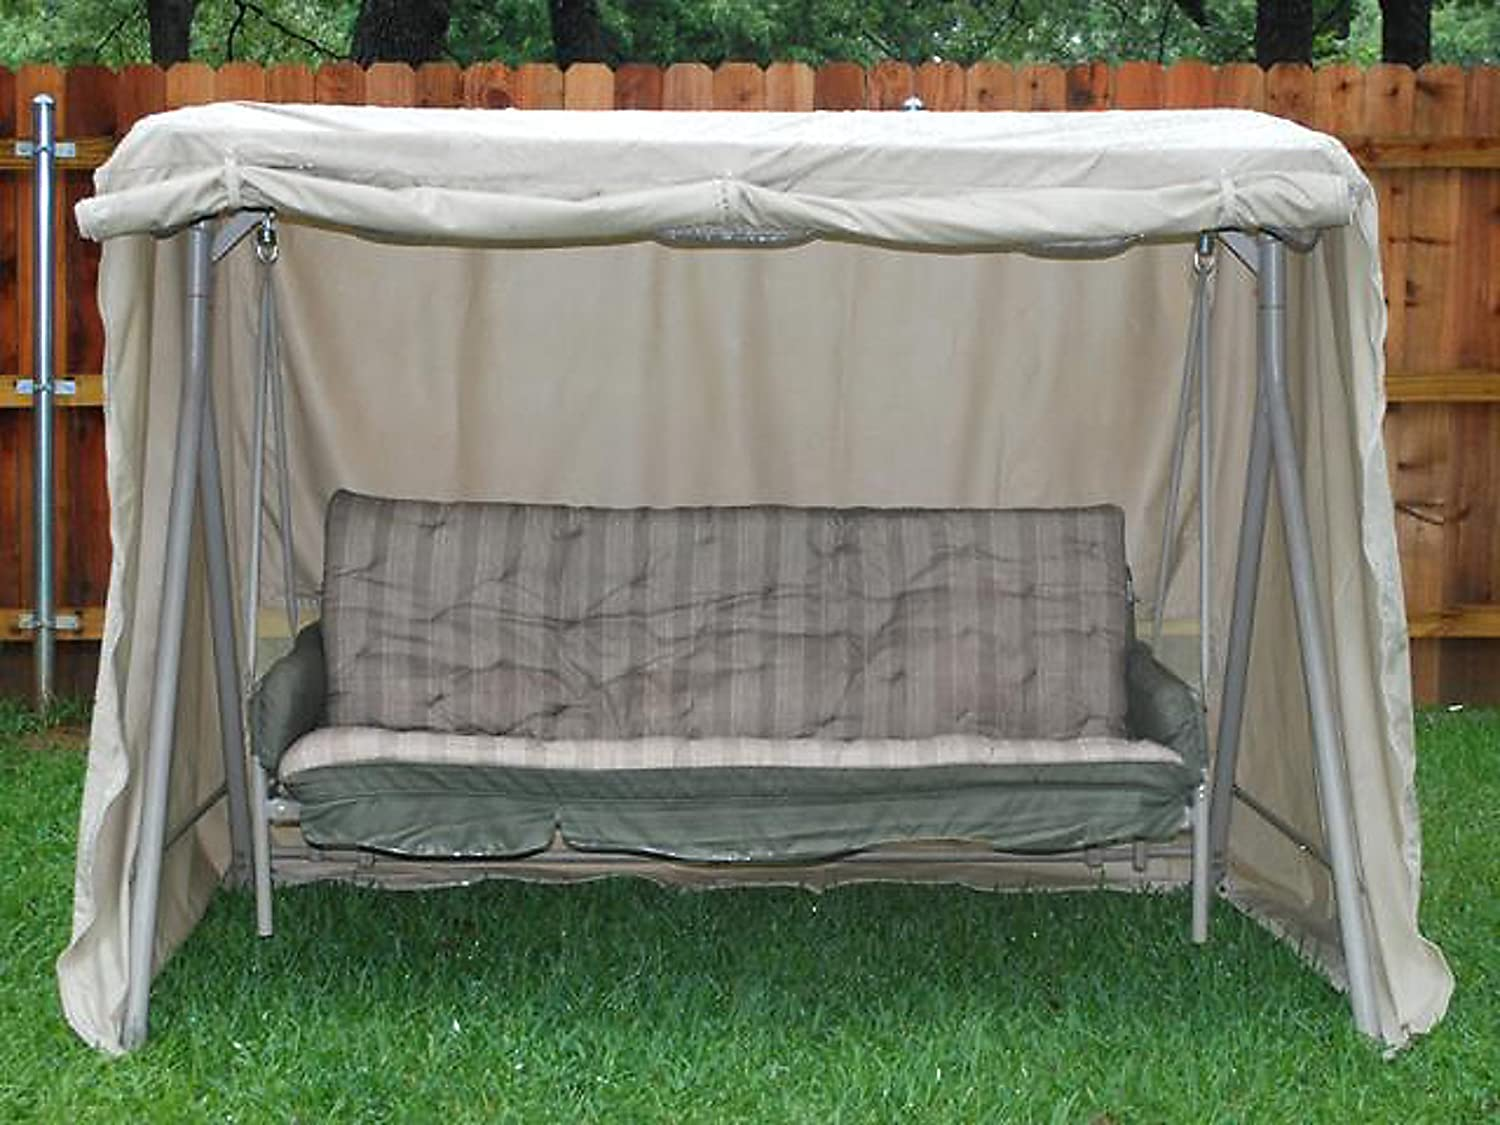 Amazon.com  CoverMates - Canopy Swing Cover - 86W x 50D x 70H - Elite Collection - 3 YR Warranty - Year Around Protection - Khaki  Outdoor Canopies ... & Amazon.com : CoverMates - Canopy Swing Cover - 86W x 50D x 70H ...